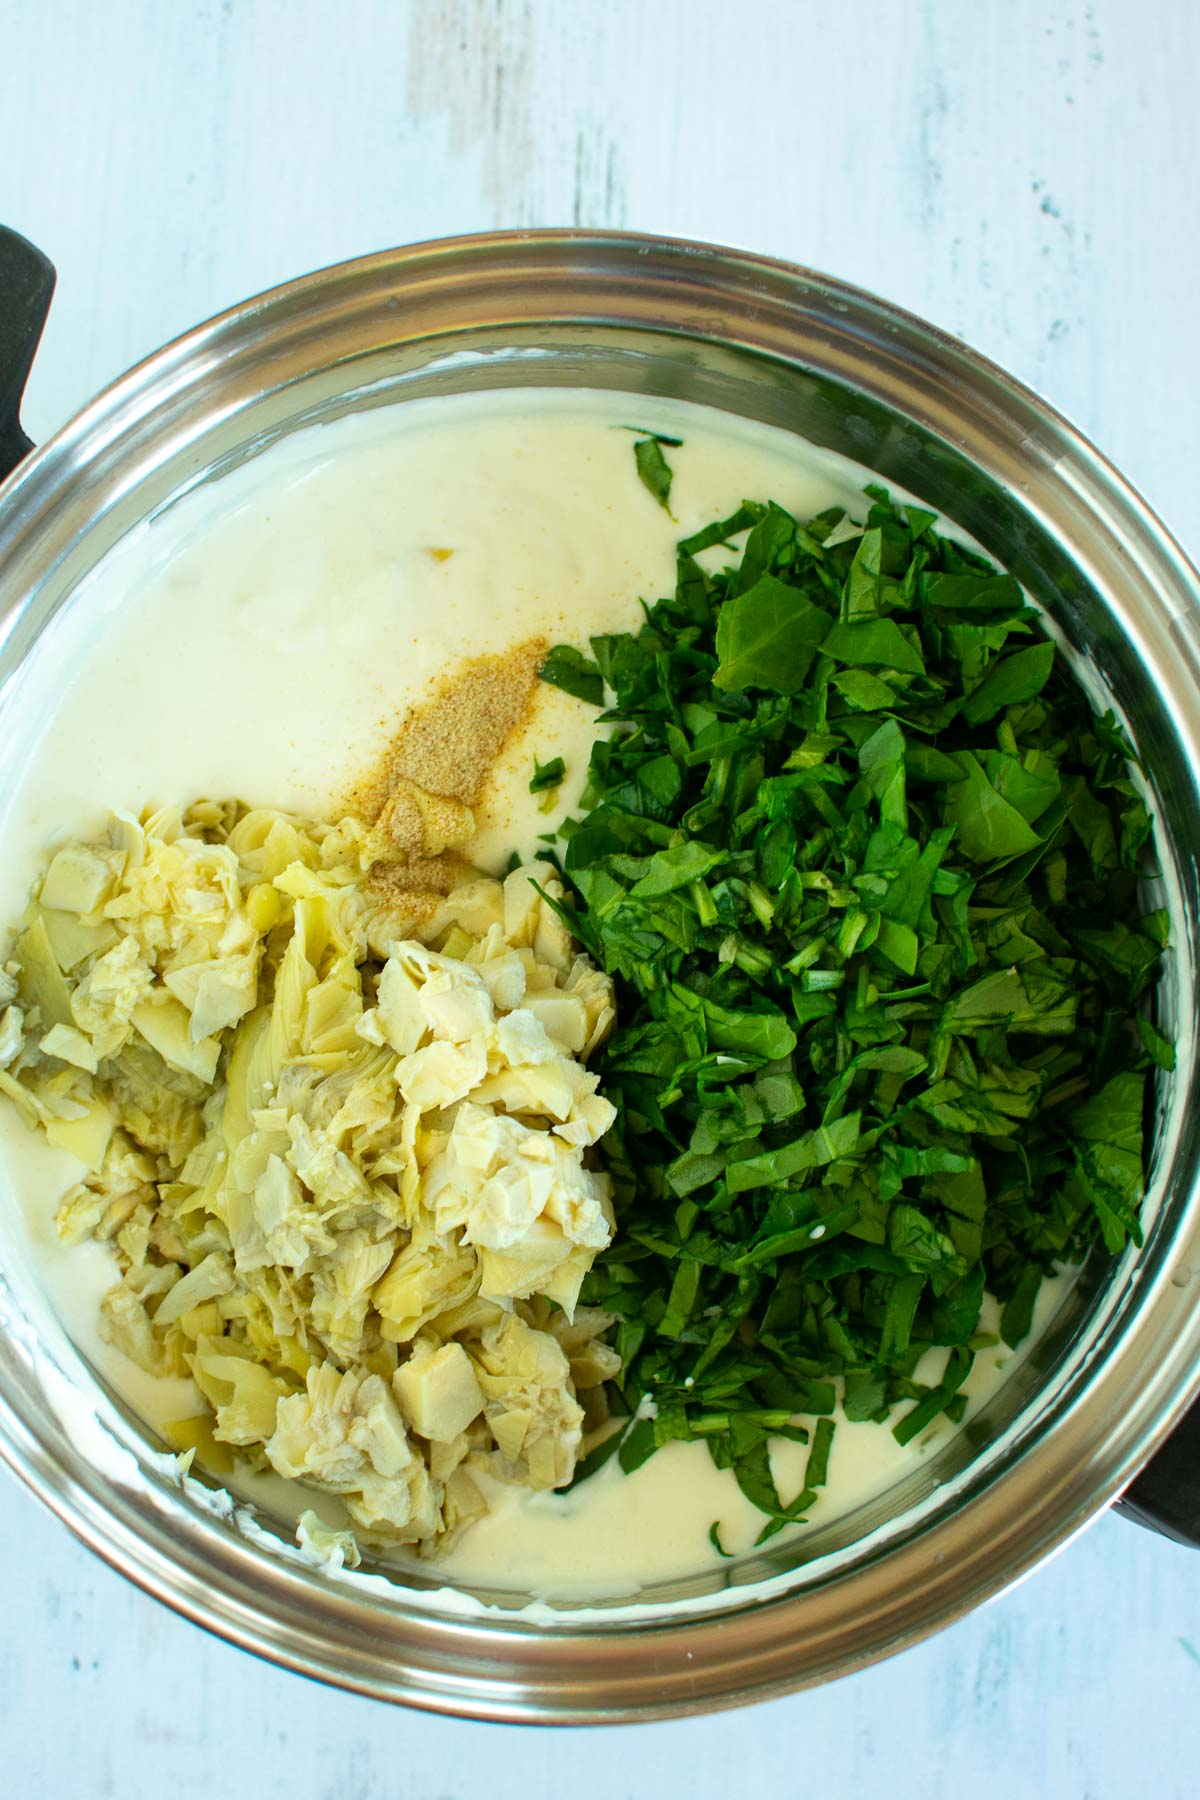 A saucepan with spinach and artichokes in cream sauce.